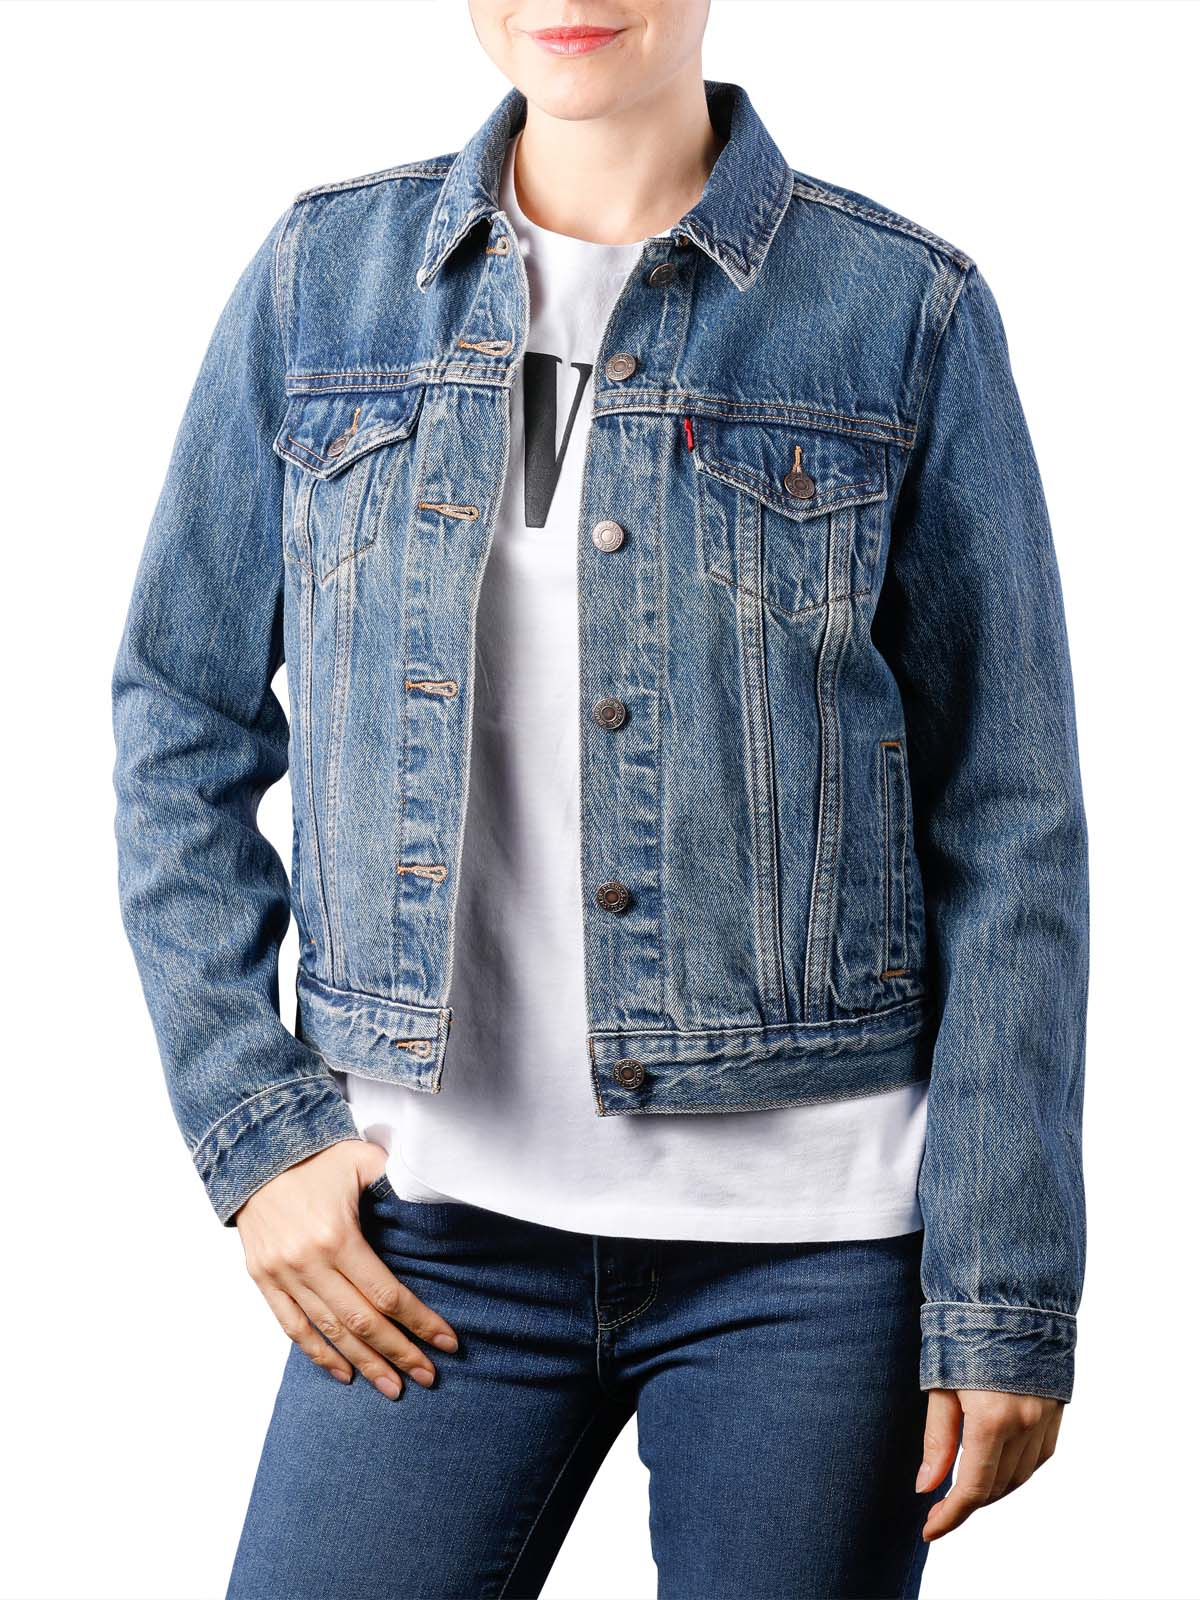 Levi's Original Trucker soft as butter Levi's Damen Jacke